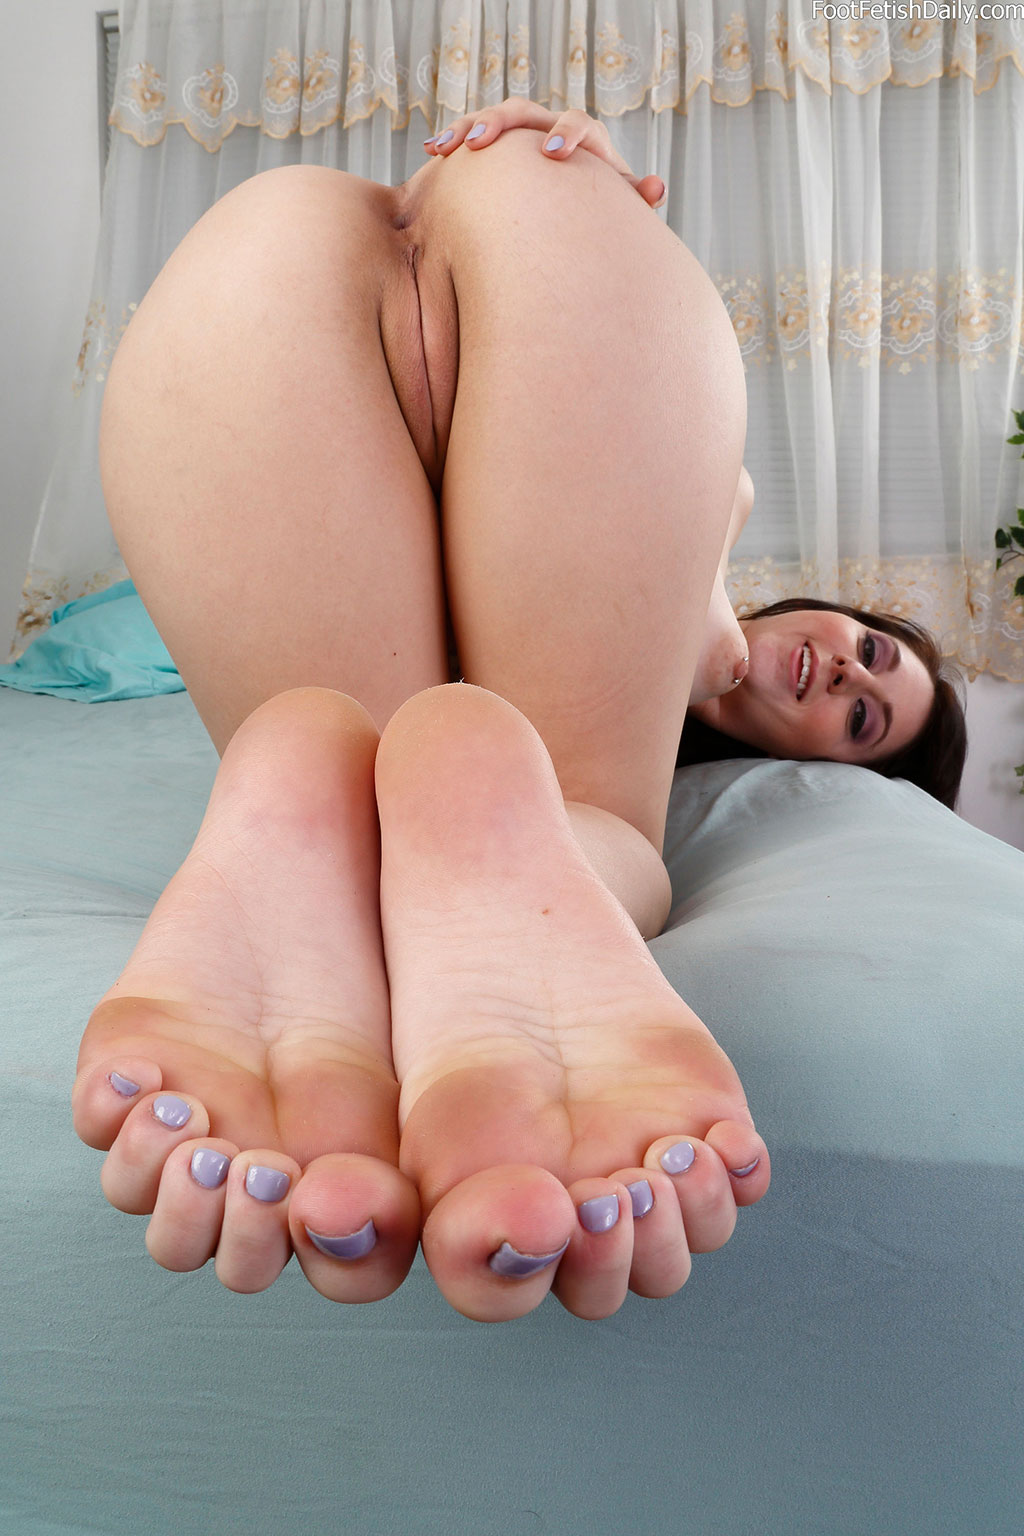 Luna Teases With Her Sexy Feet And Nice Shaved Pussy 34755-6367